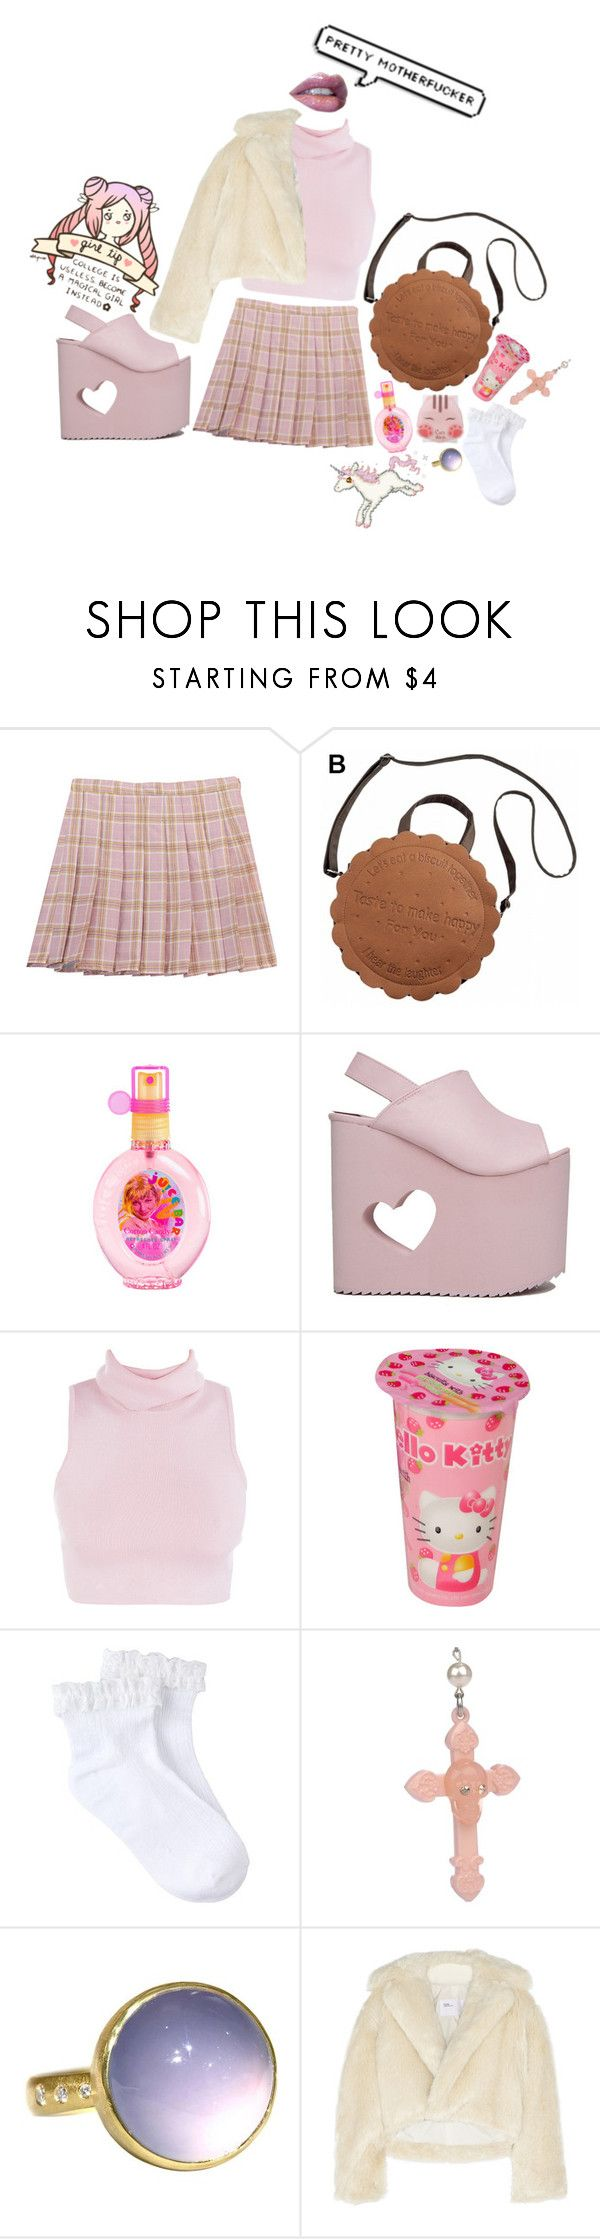 """not really that good tbh ._."" by memealicious ❤ liked on Polyvore featuring Chicnova Fashion, Nikki Lipstick, Hello Kitty, Tarina Tarantino, Toga and GET LOST"